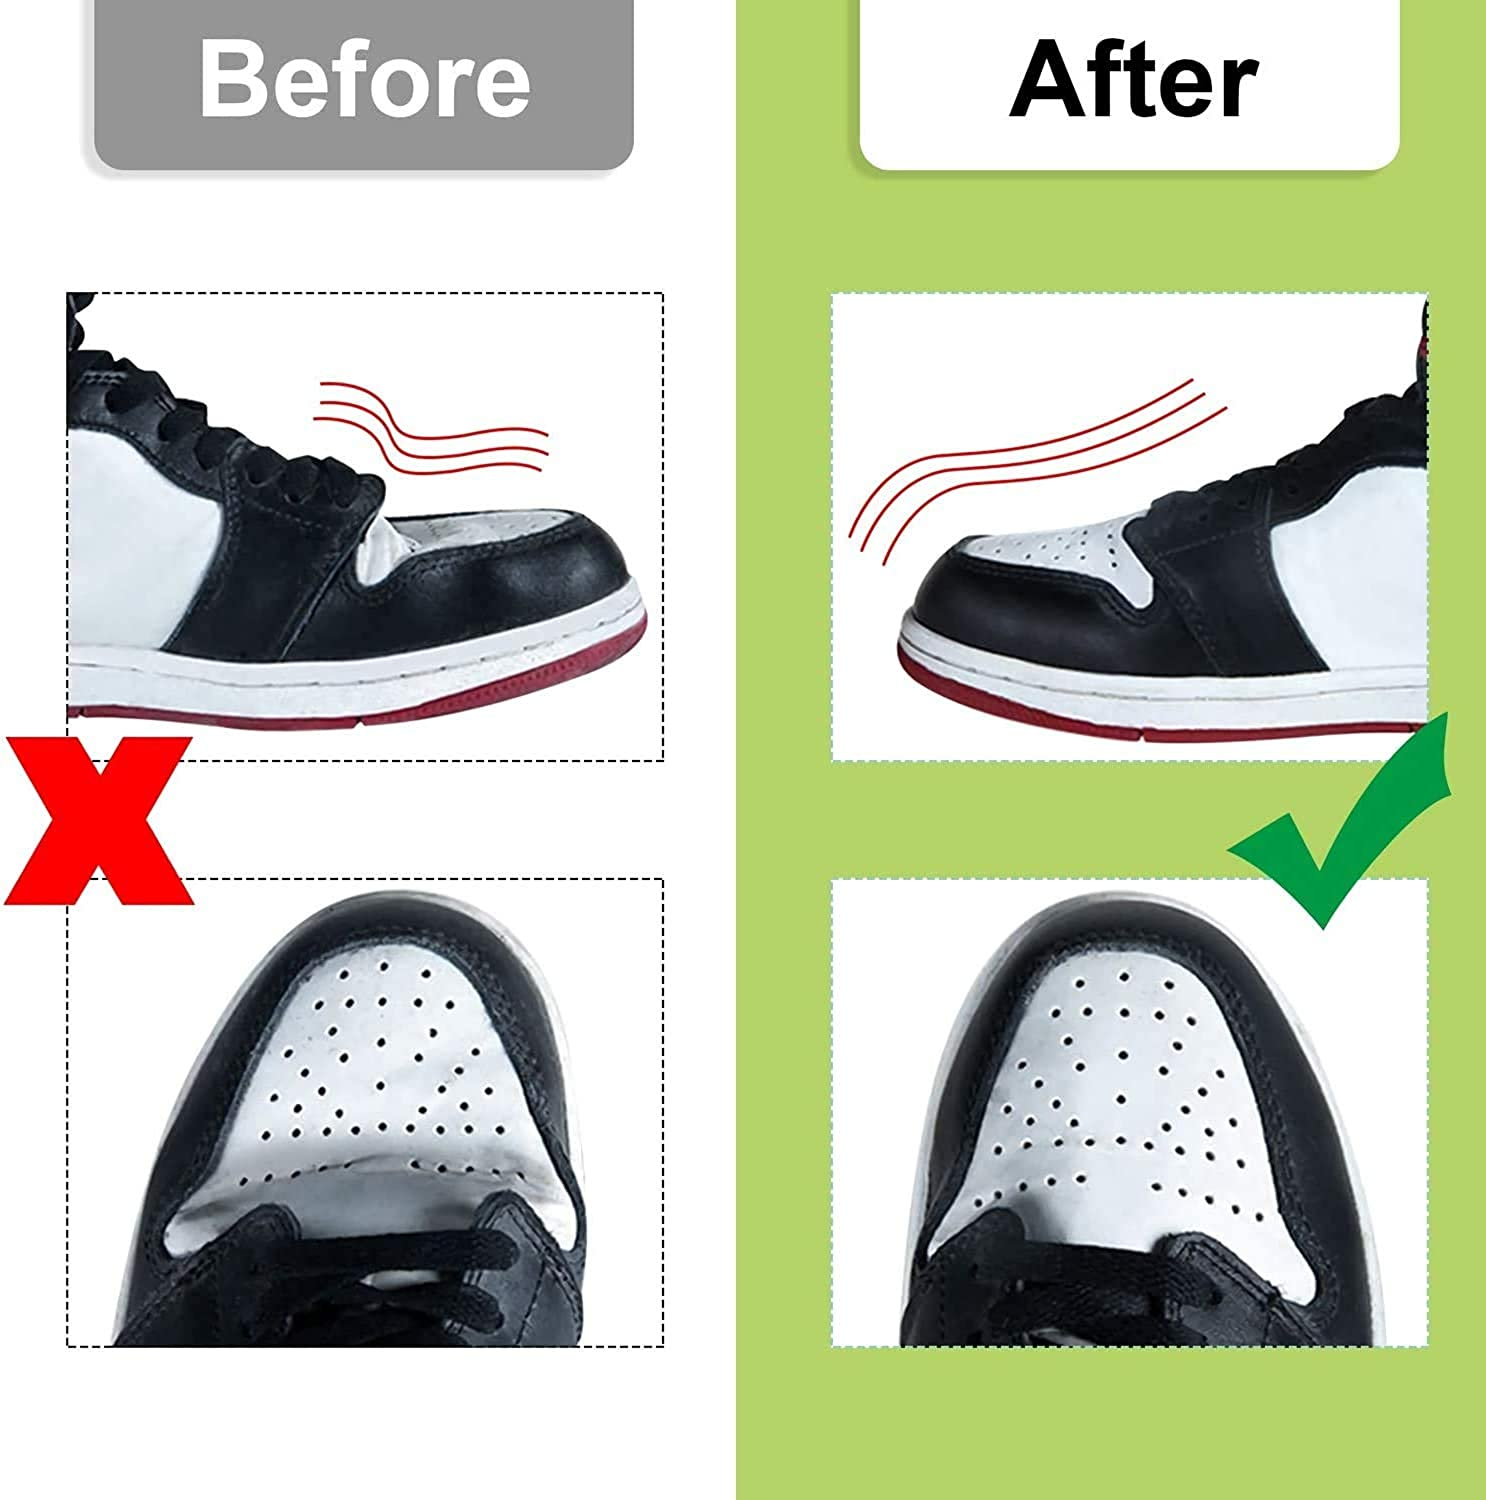 2 Pairs Sneaker Shoe Shields Black Anti-wrinkle Shoes Shields Protector Toe Box Decreaser Prevent Sneaker Shoes Crease Indentation Mens 7-12// Womens 5-8